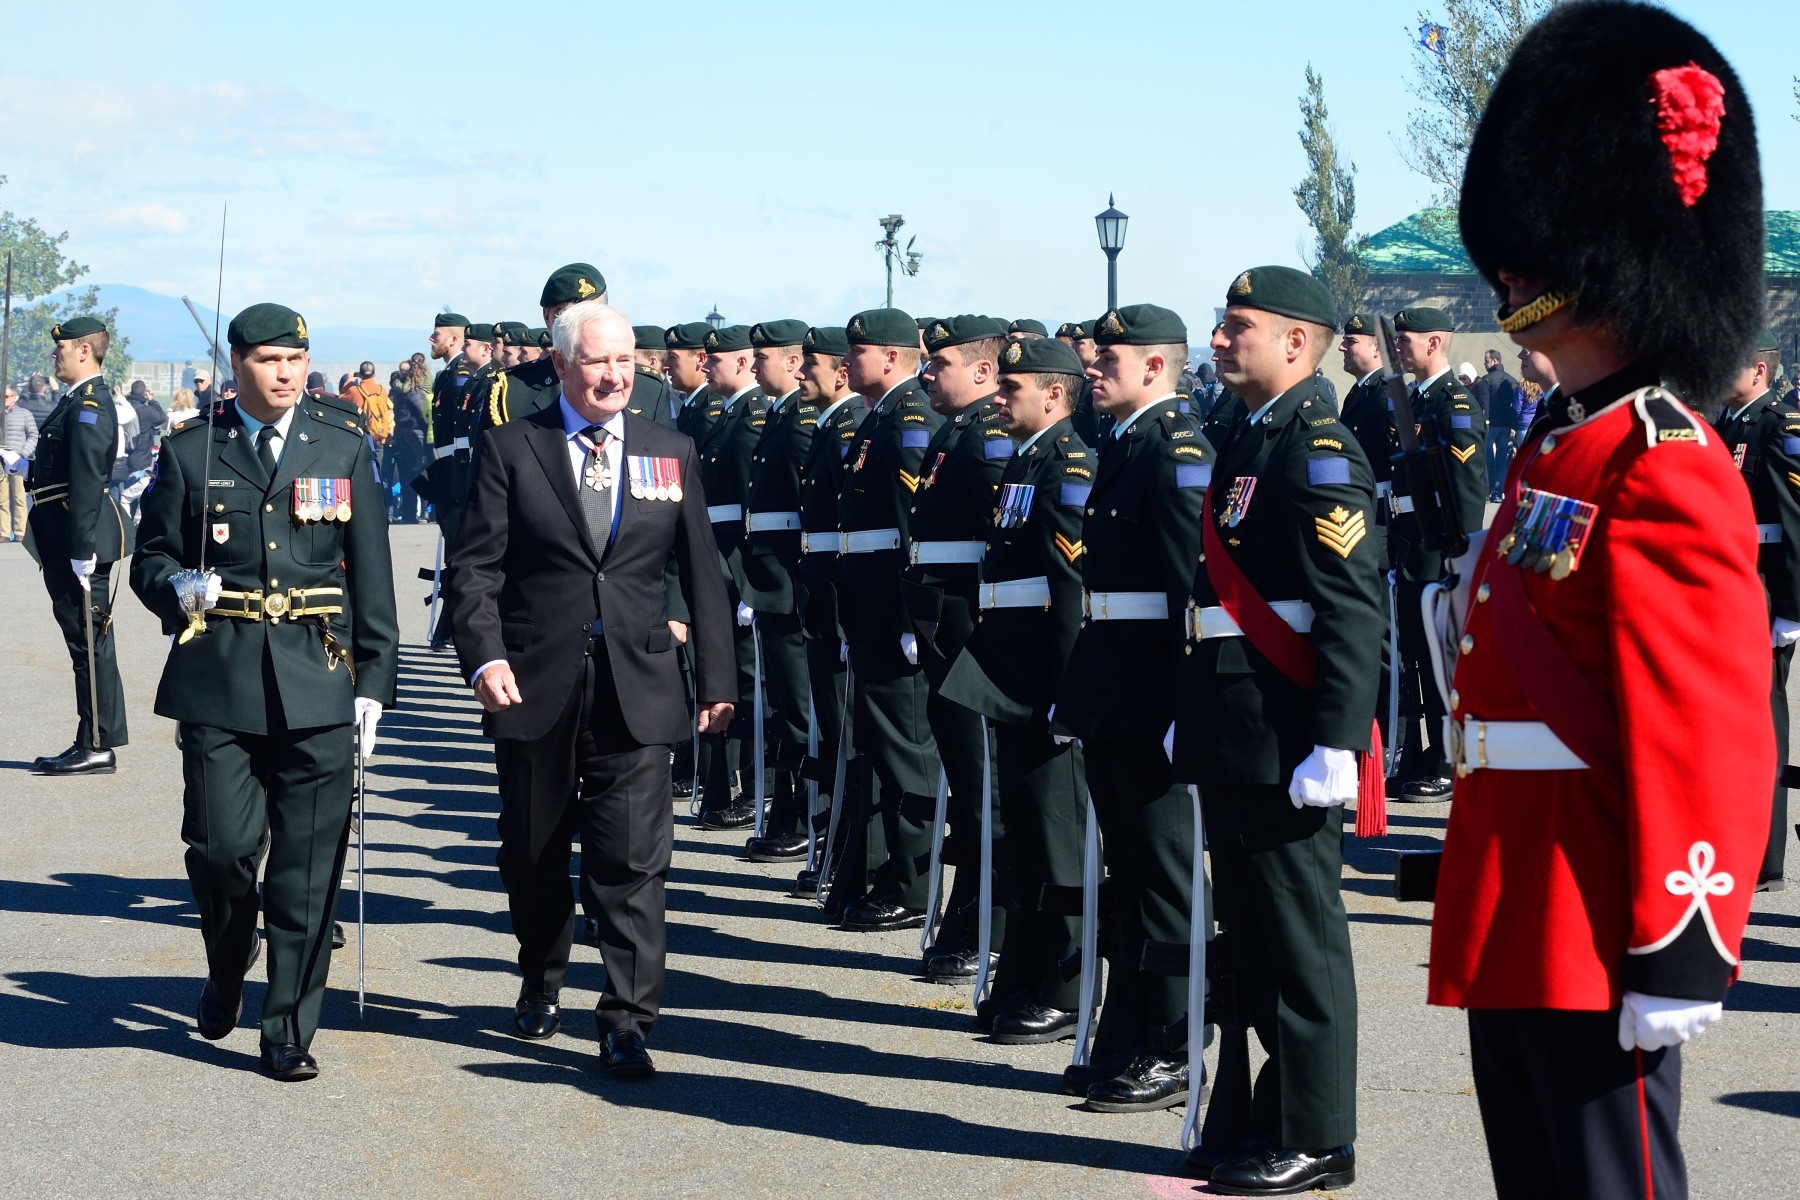 The Governor General reviewed the guard of honour.